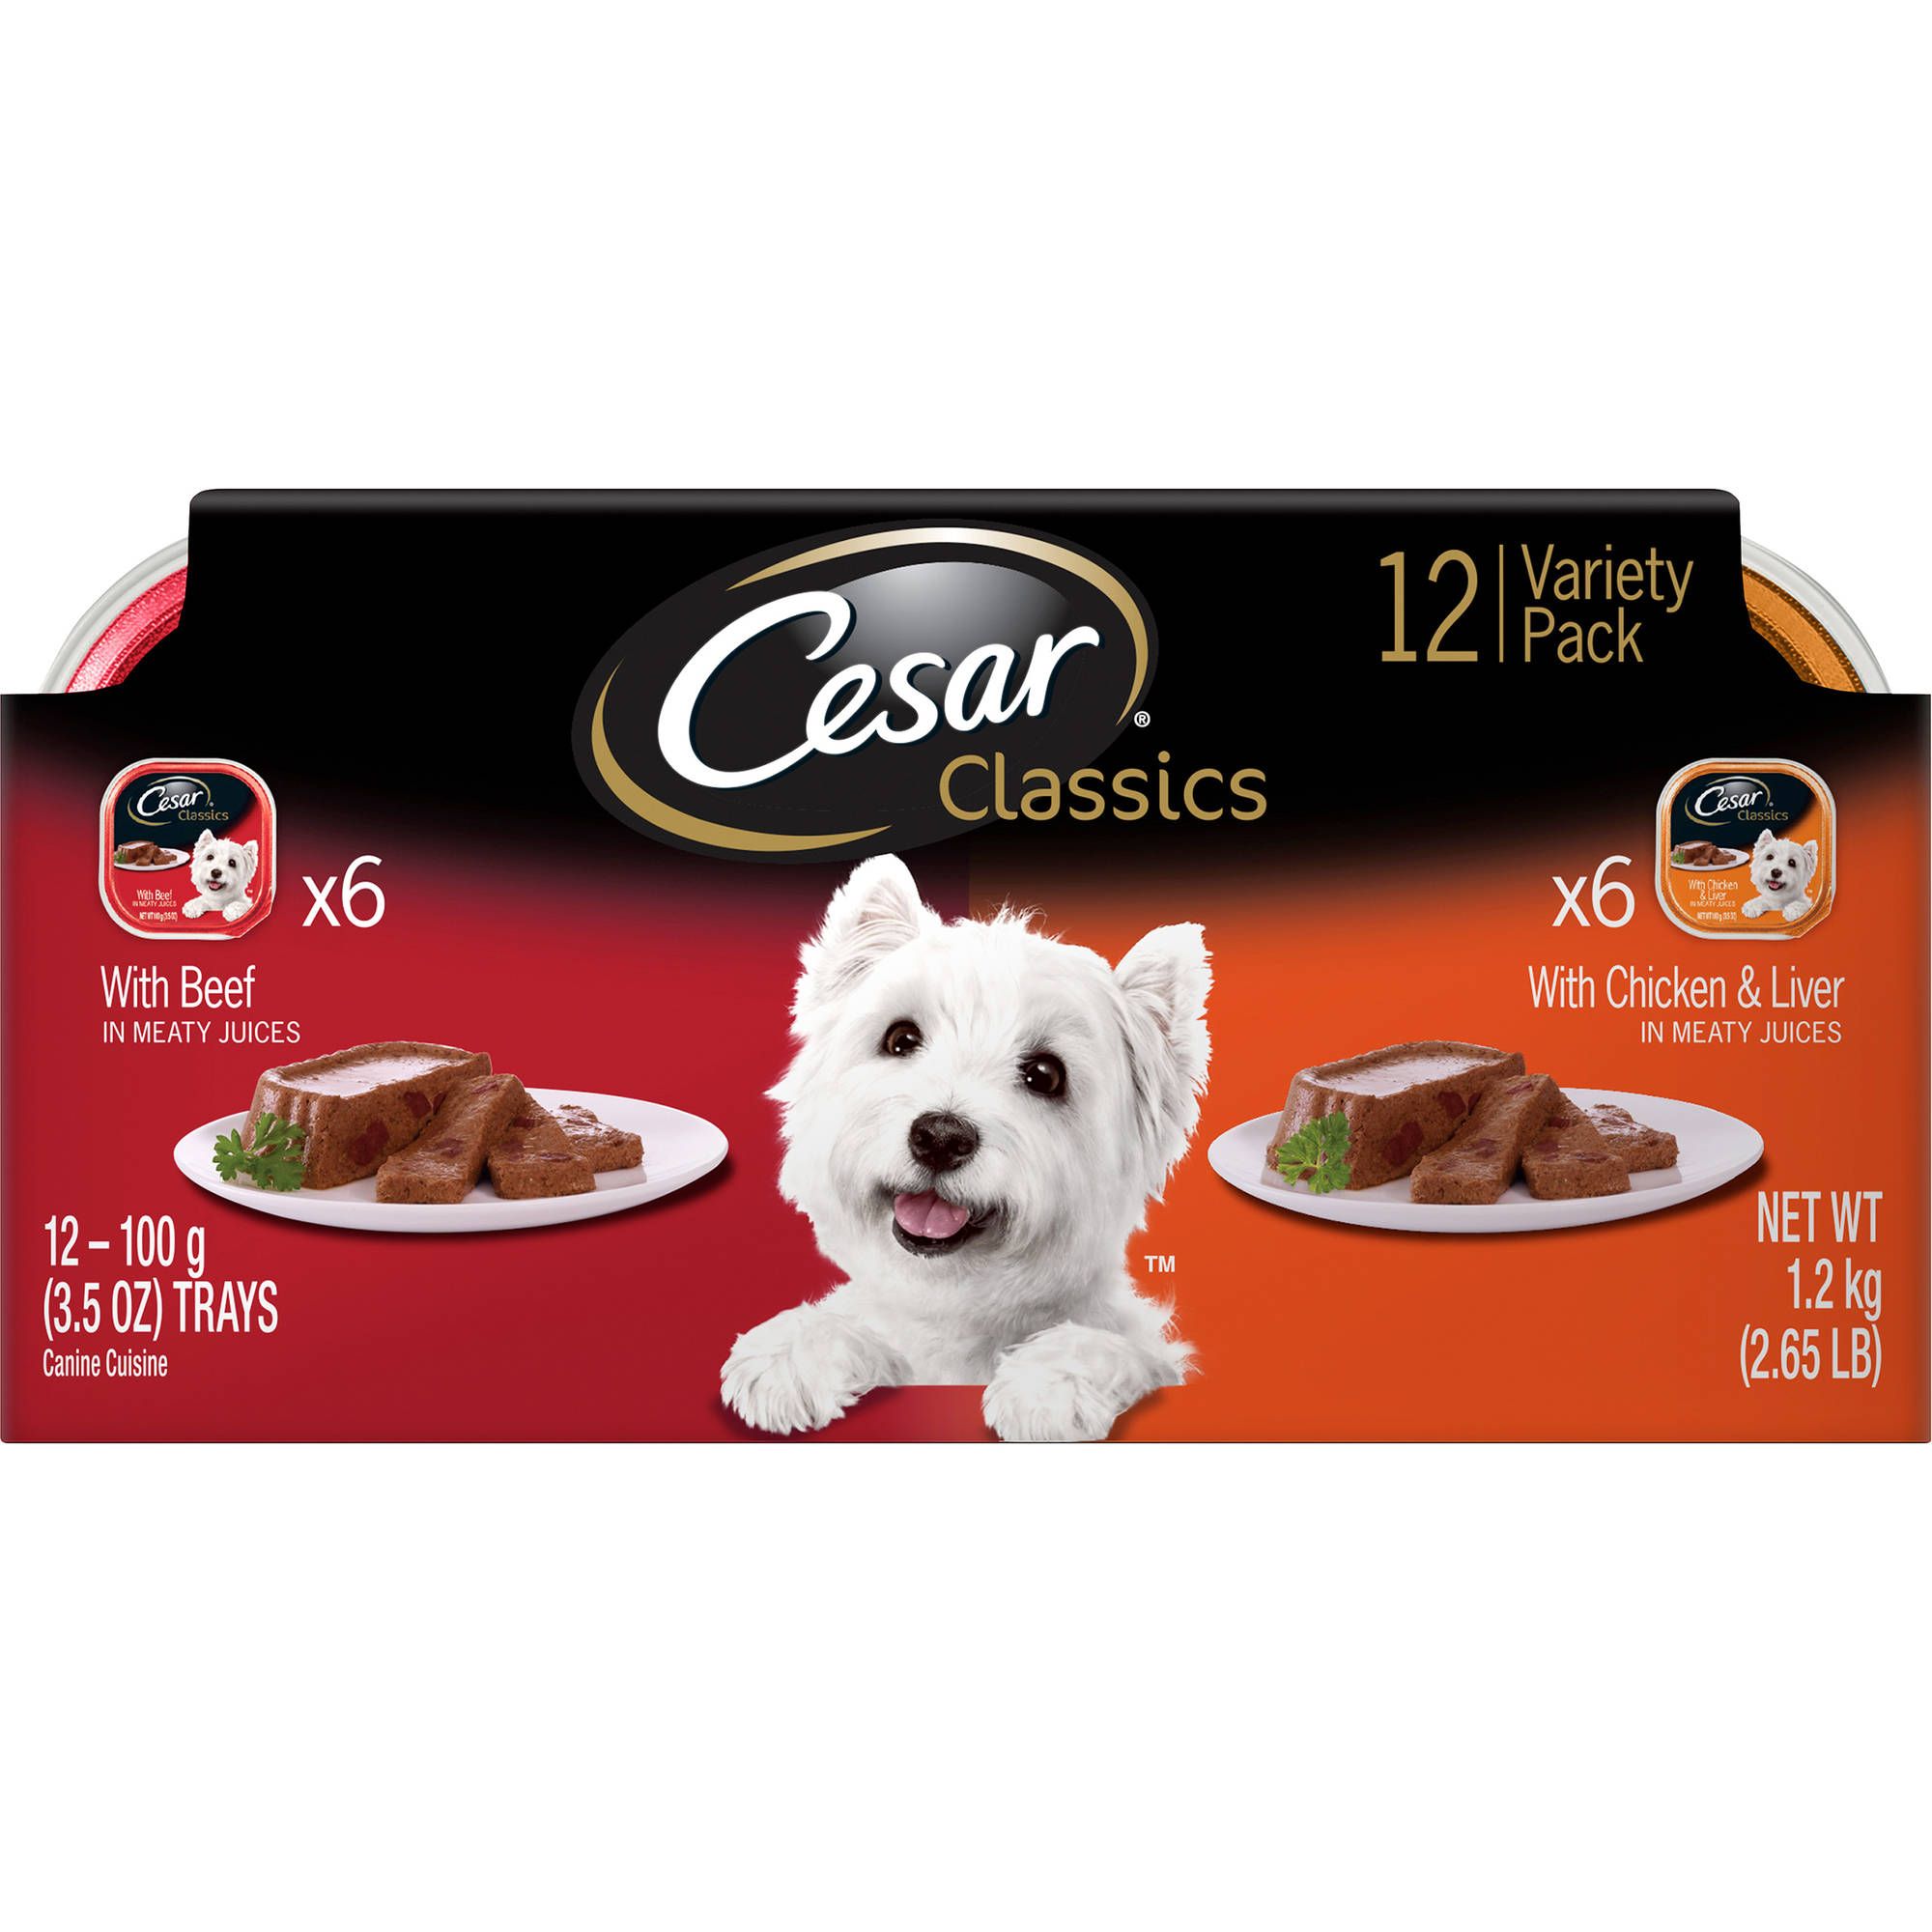 Cesar Classics With Beef and Chicken Liver, Dog Food Variety Pack, 2.65 lb Box